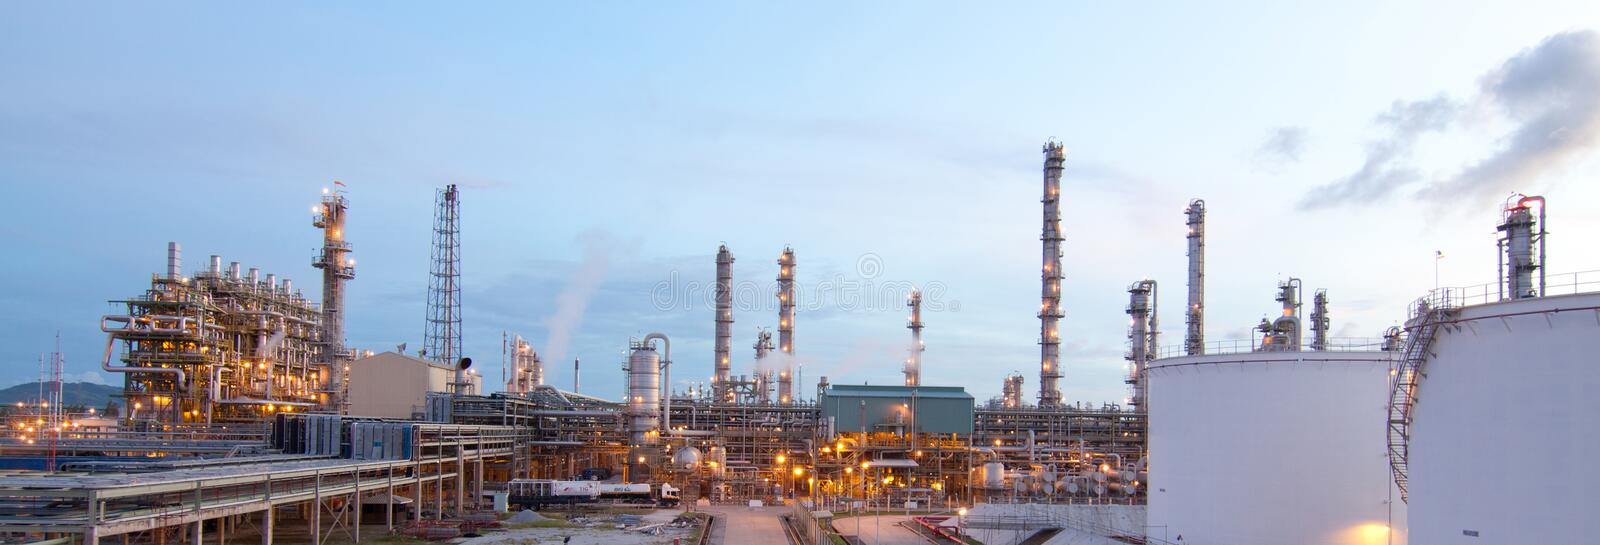 Refinery plants in the morning time. Refinery petrochemical plant in the morning time at the industrial estate stock photo